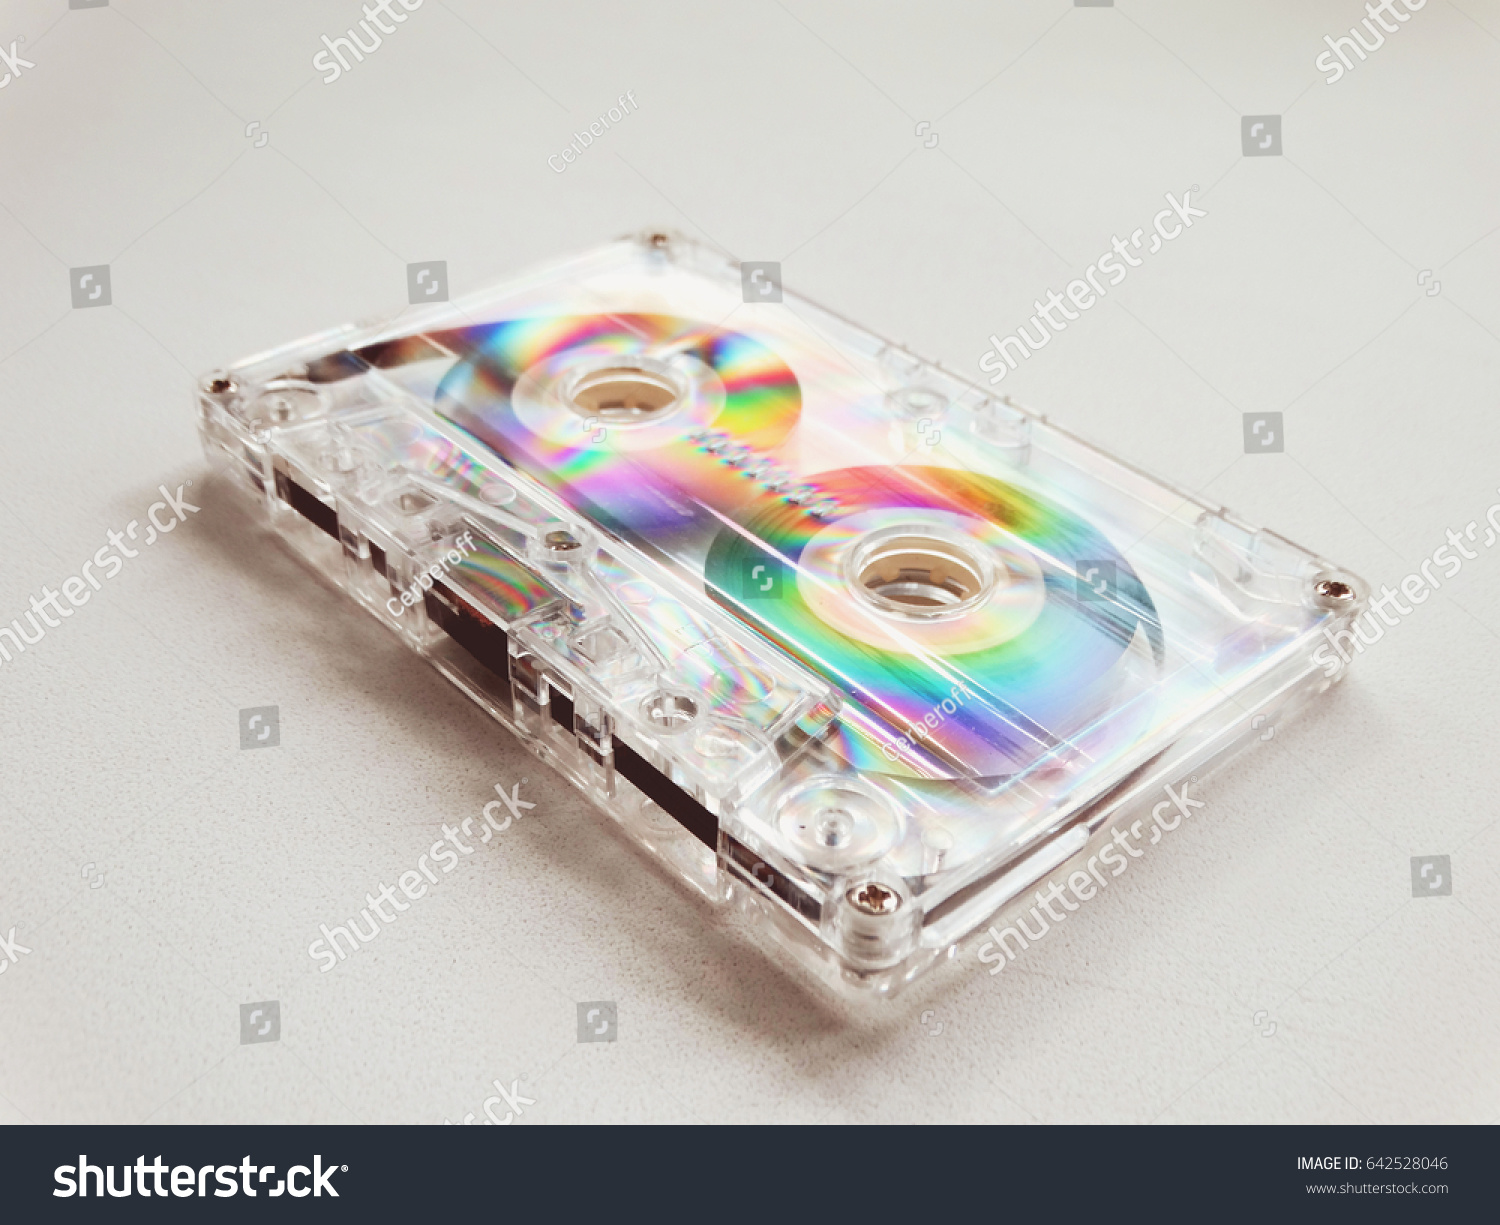 Great Wallpaper Music Tape - stock-photo-audio-cassettes-for-recorder-s-s-s-retro-vintage-old-music-time-generation-music-tape-642528046  Graphic_49421.jpg